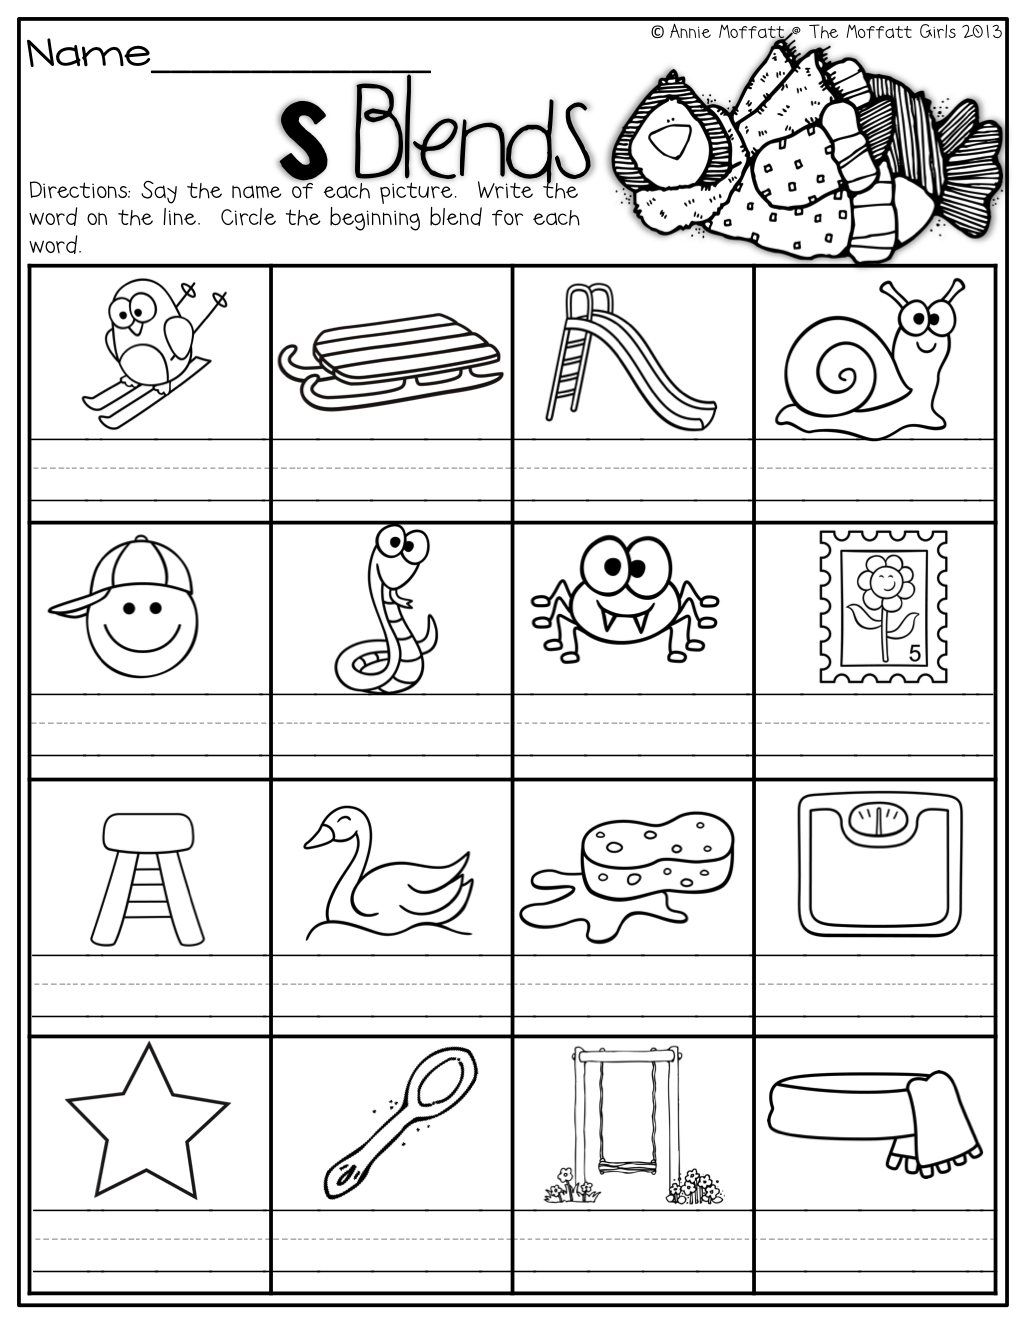 S Blends Word Work Pinterest Phonics Kindergarten